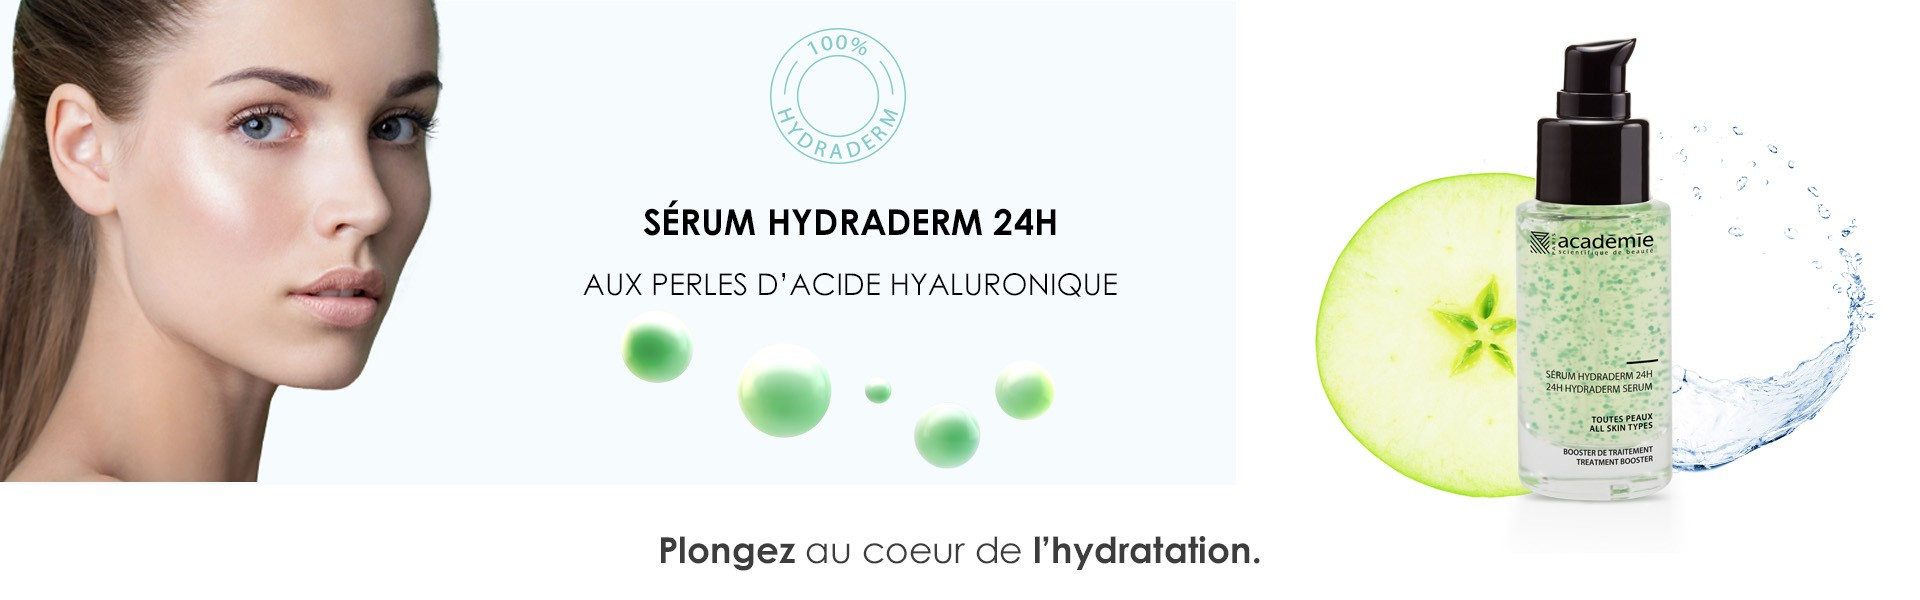 Sérum 100% Hydraderm Académie Scientifique de Beauté